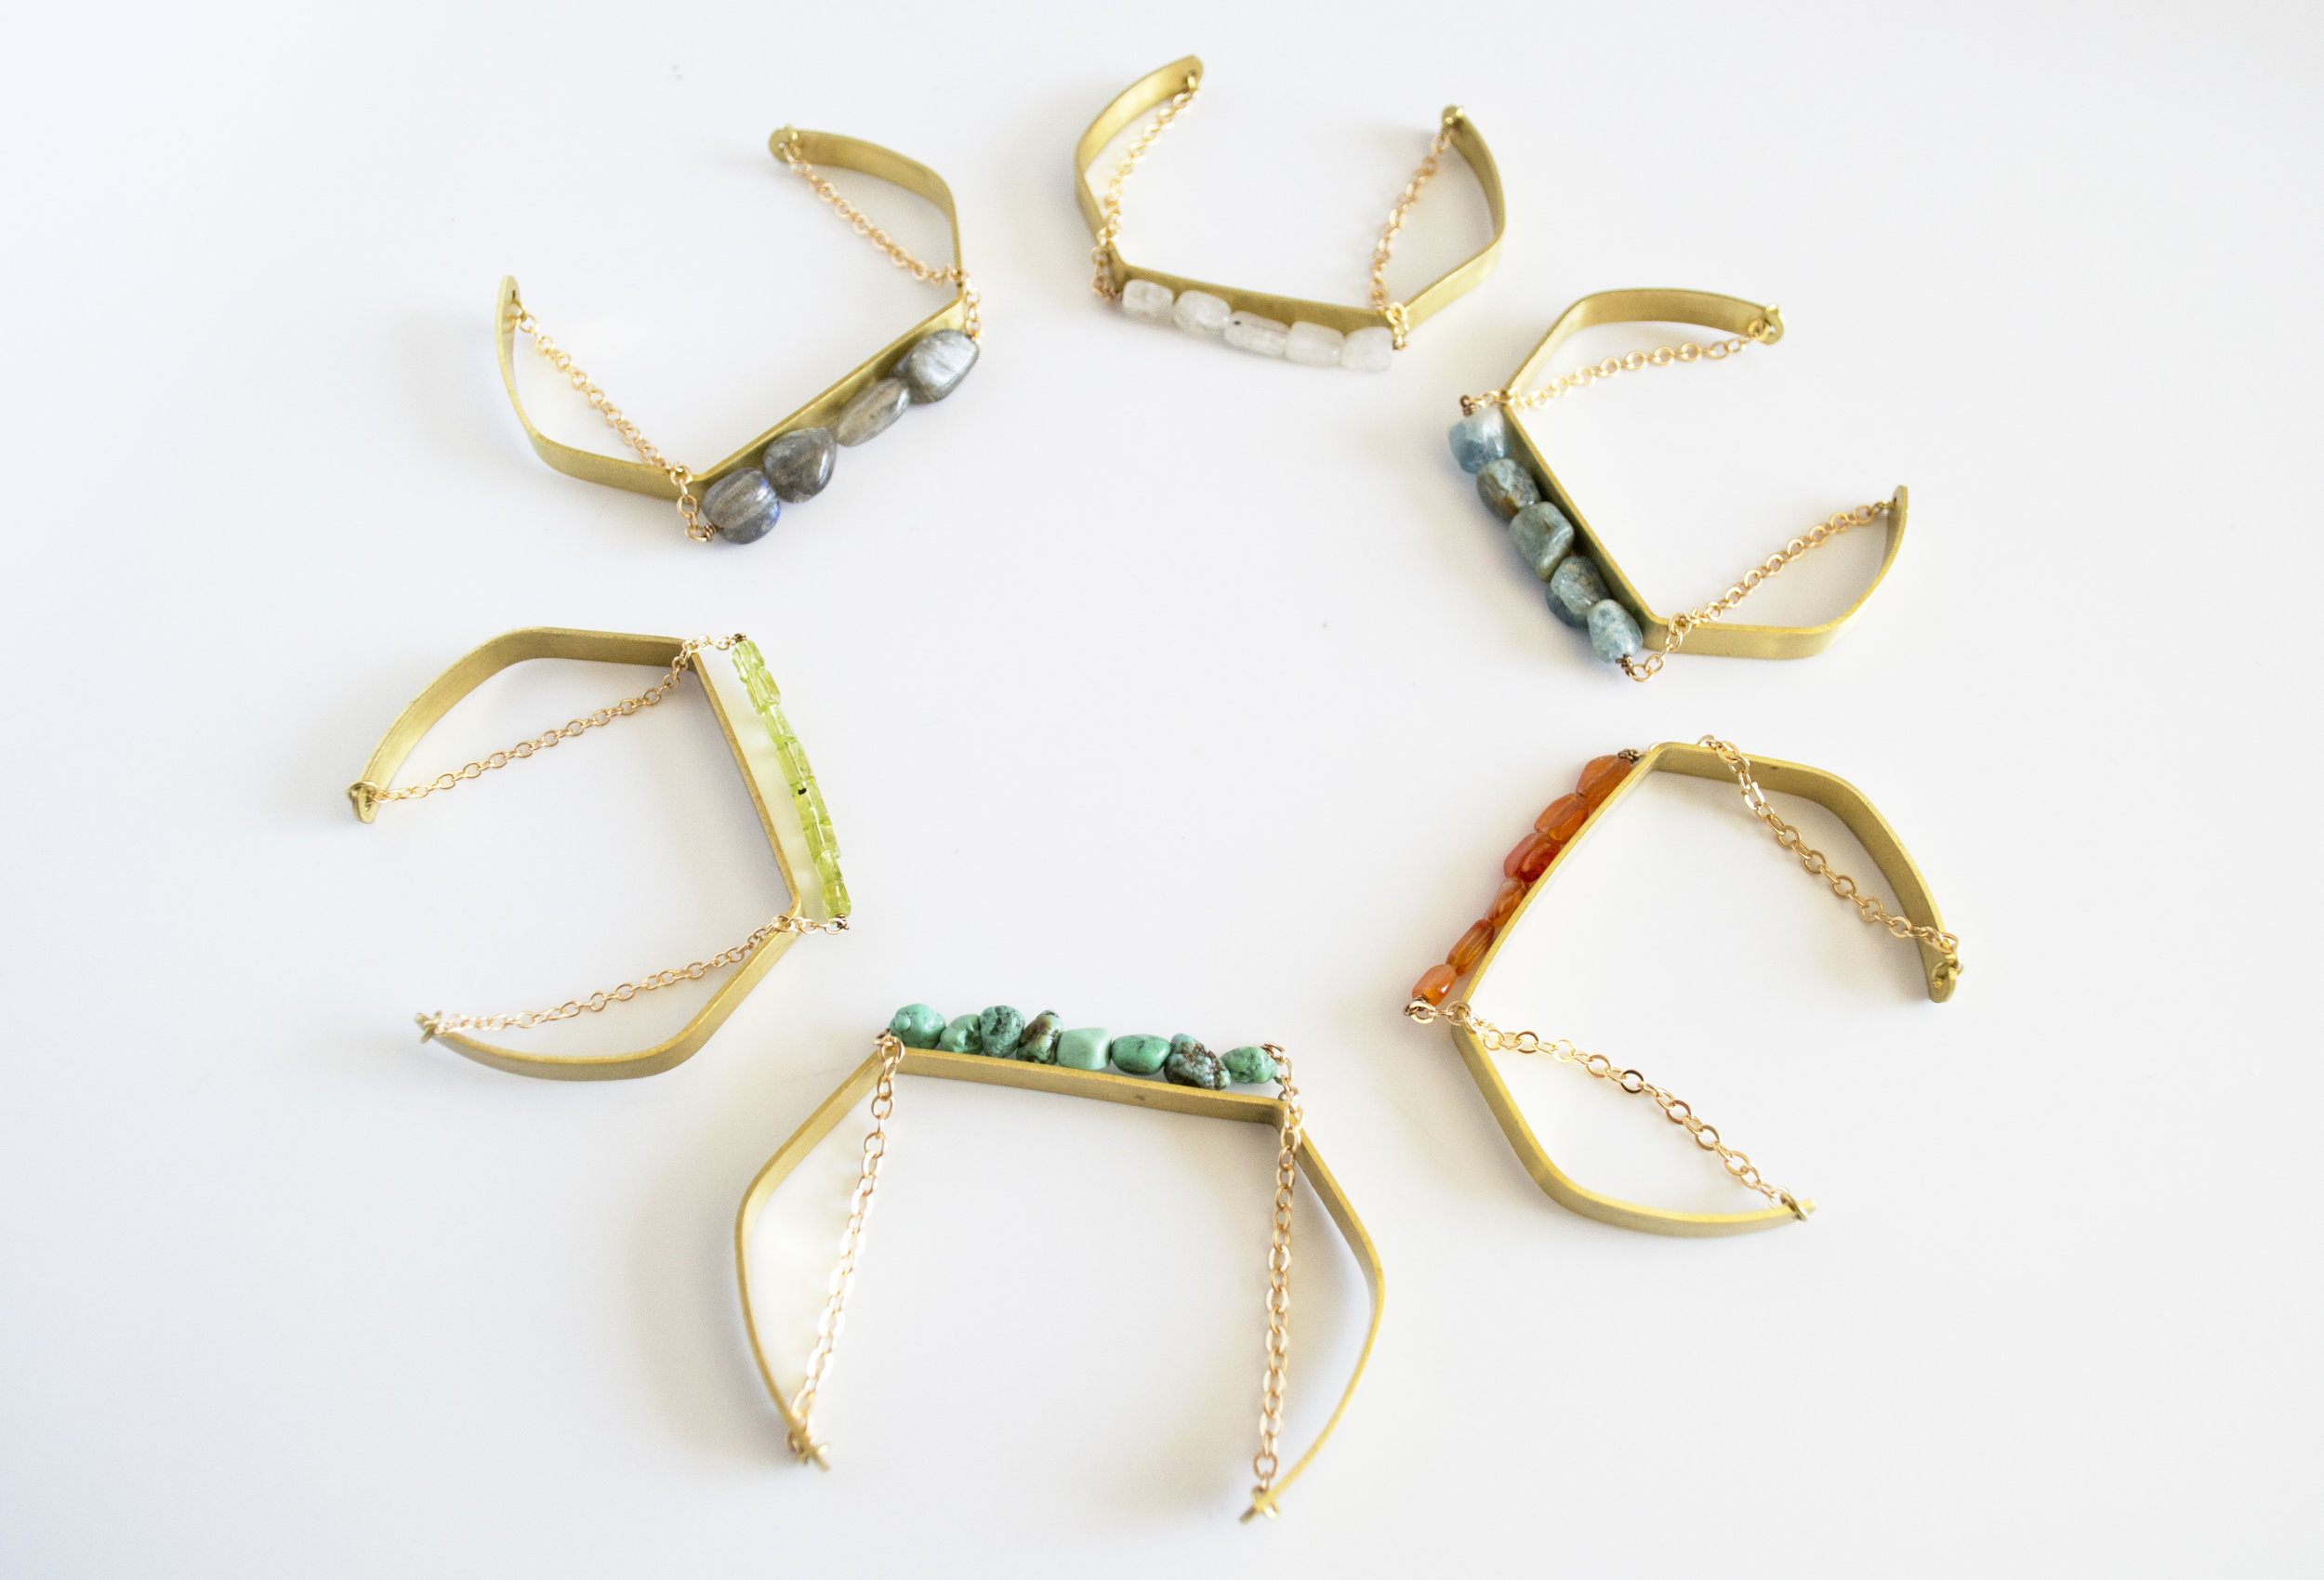 Crystal Cuff bracelets in assorted crystals